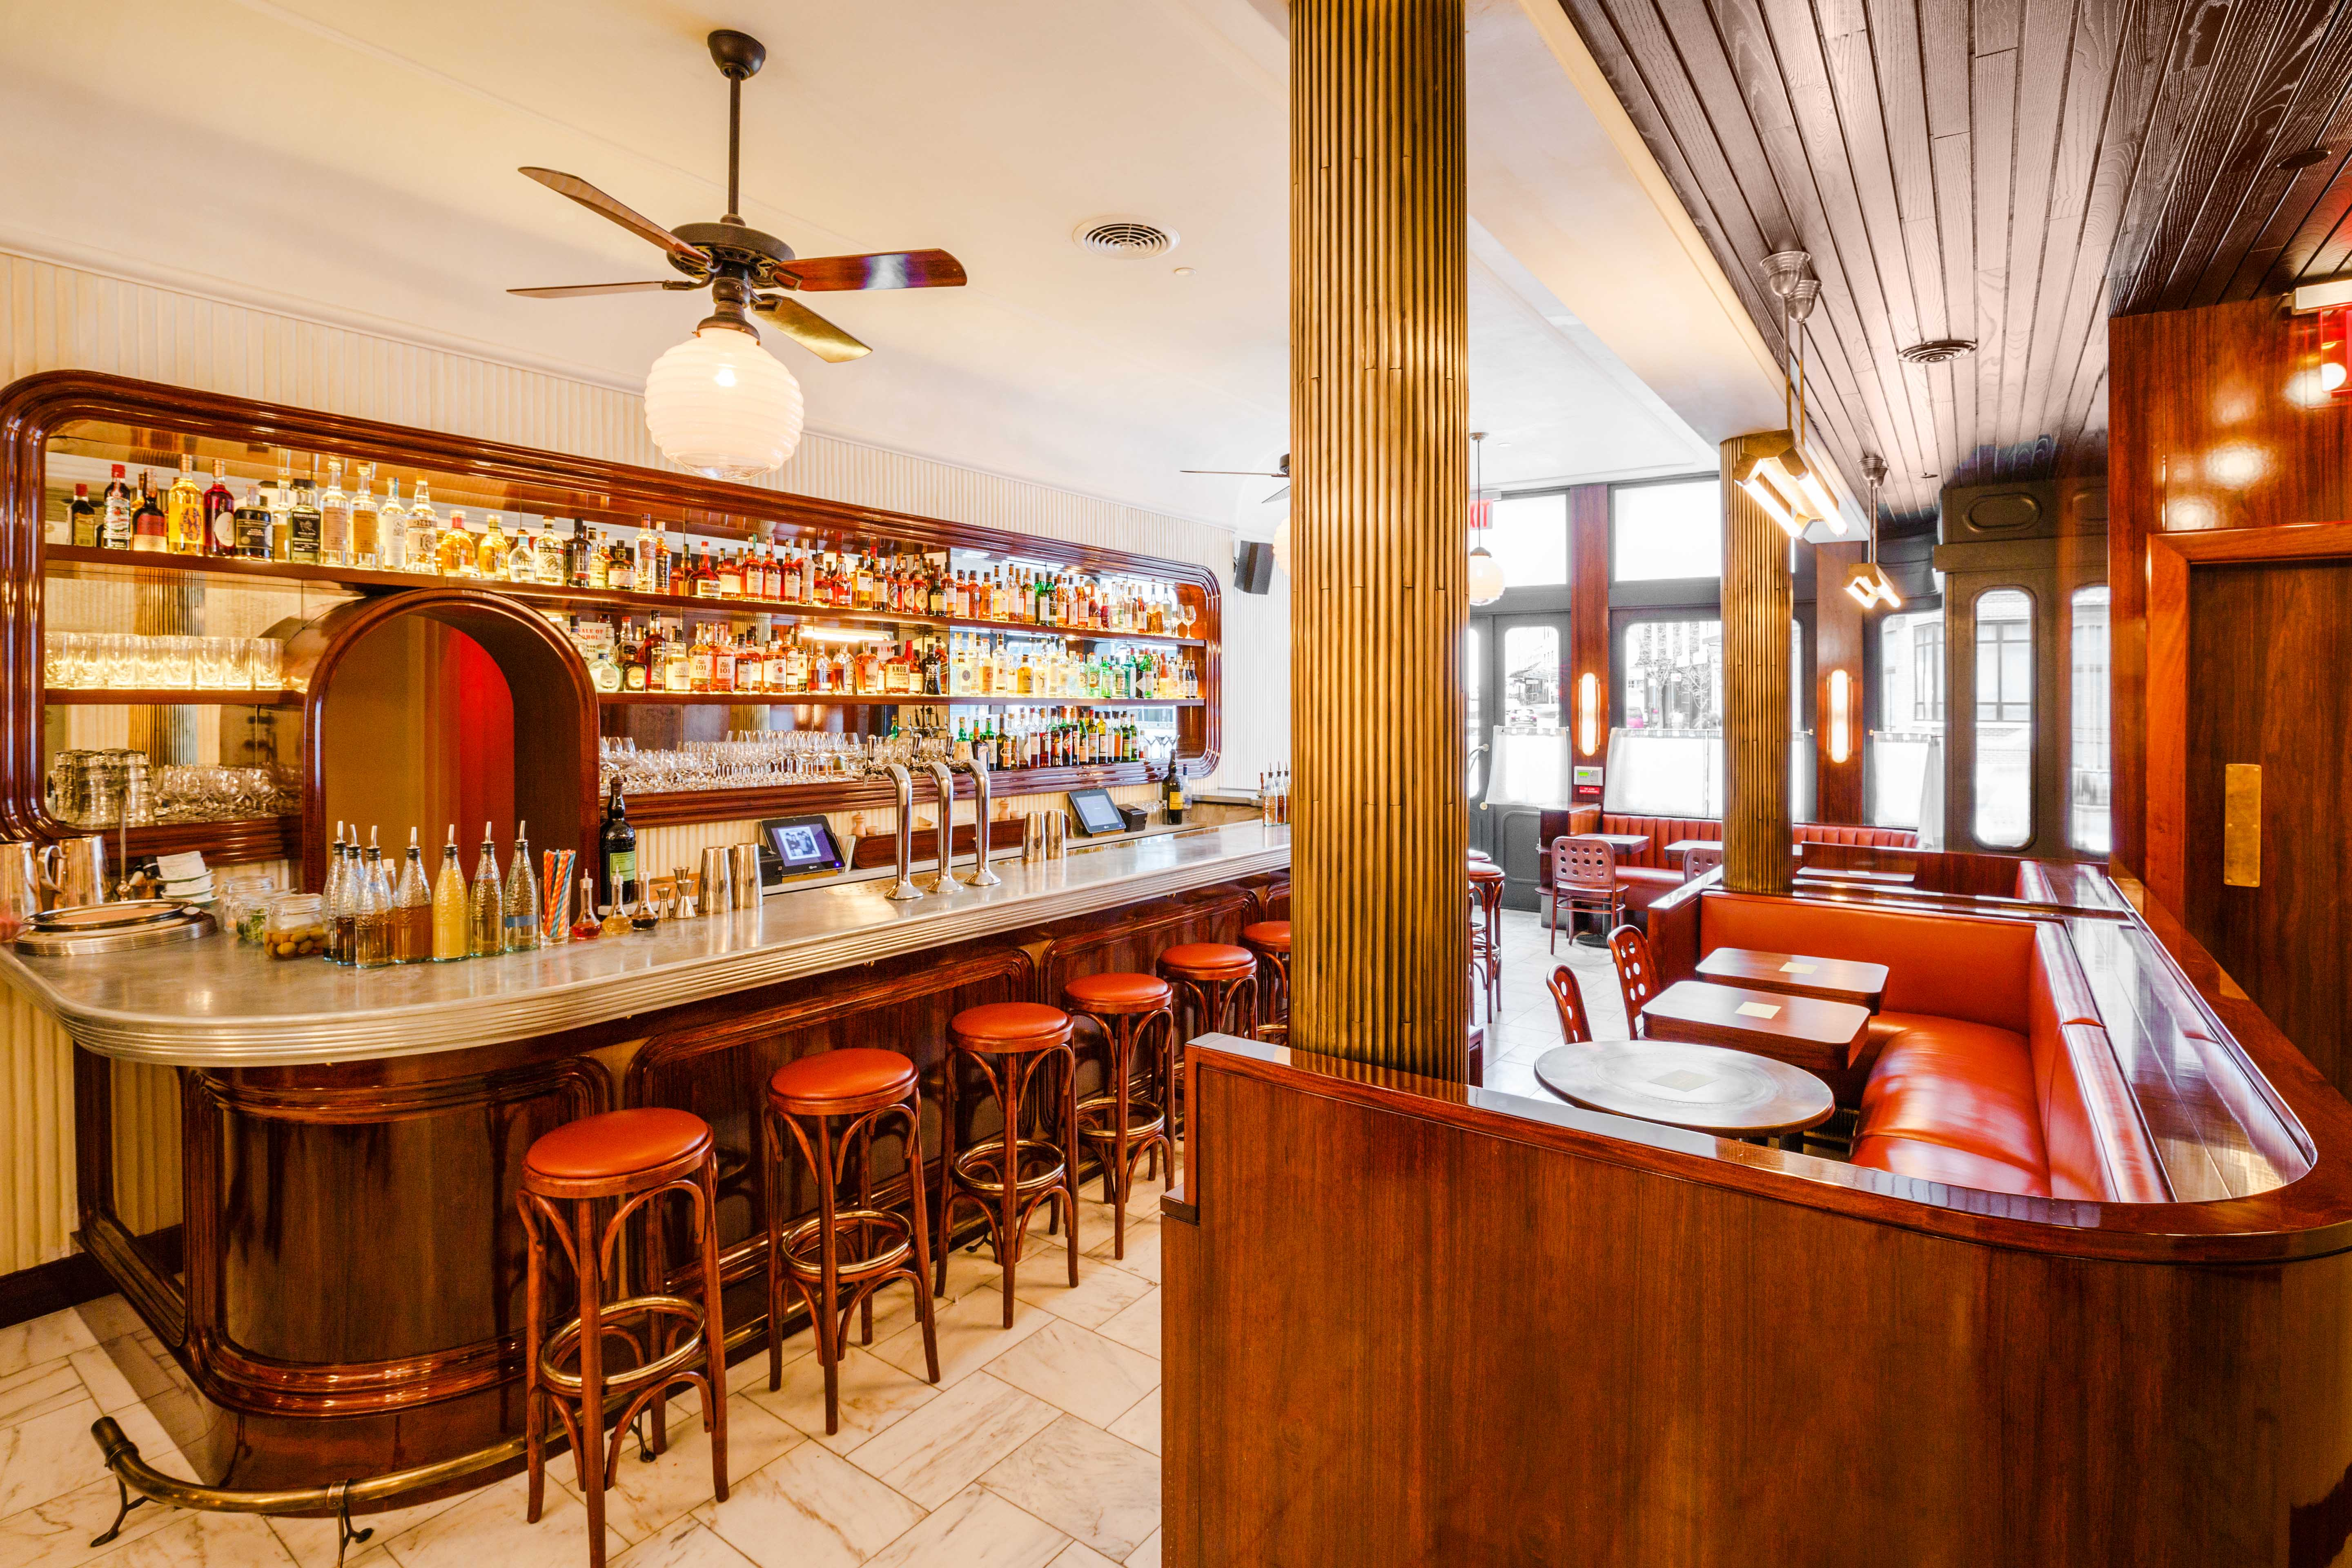 Frenchette's bar with red stools and red booths alongside